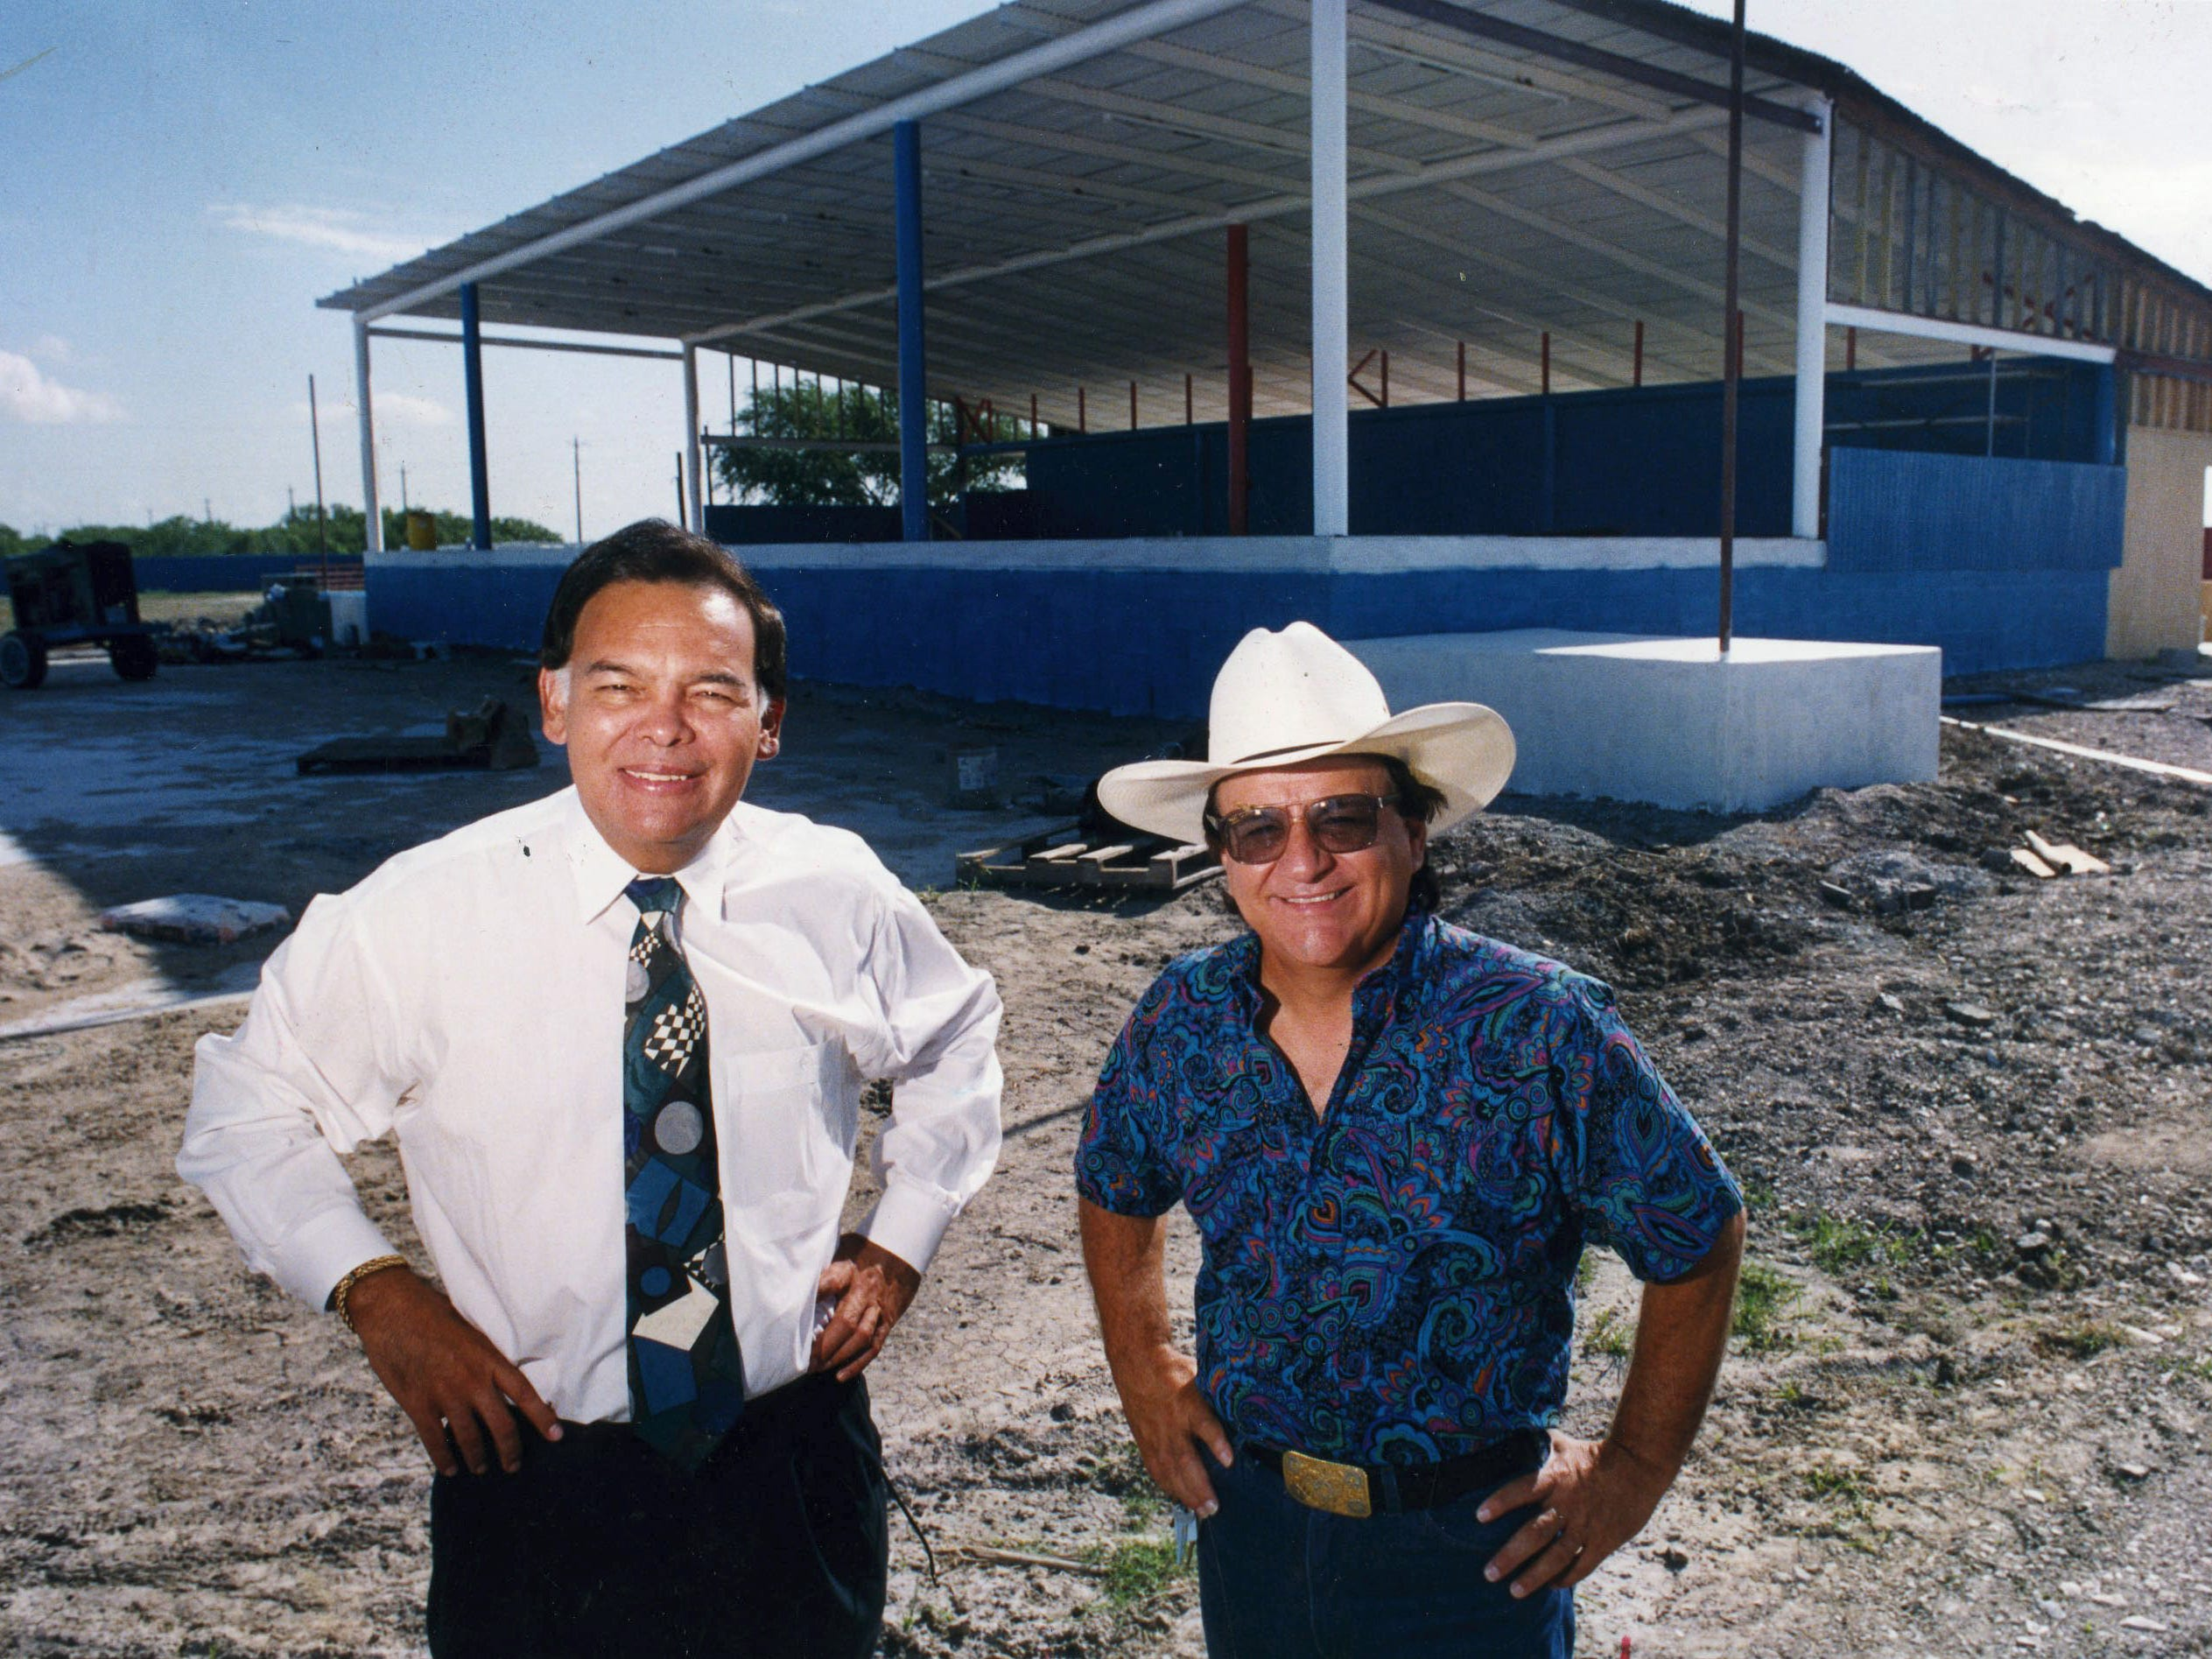 Johnny Canales (right) and Albert Huerta, owner and partner of JohnnyLand, stand in front of the stage area of the concert park being built off Saratoga in September 1993.